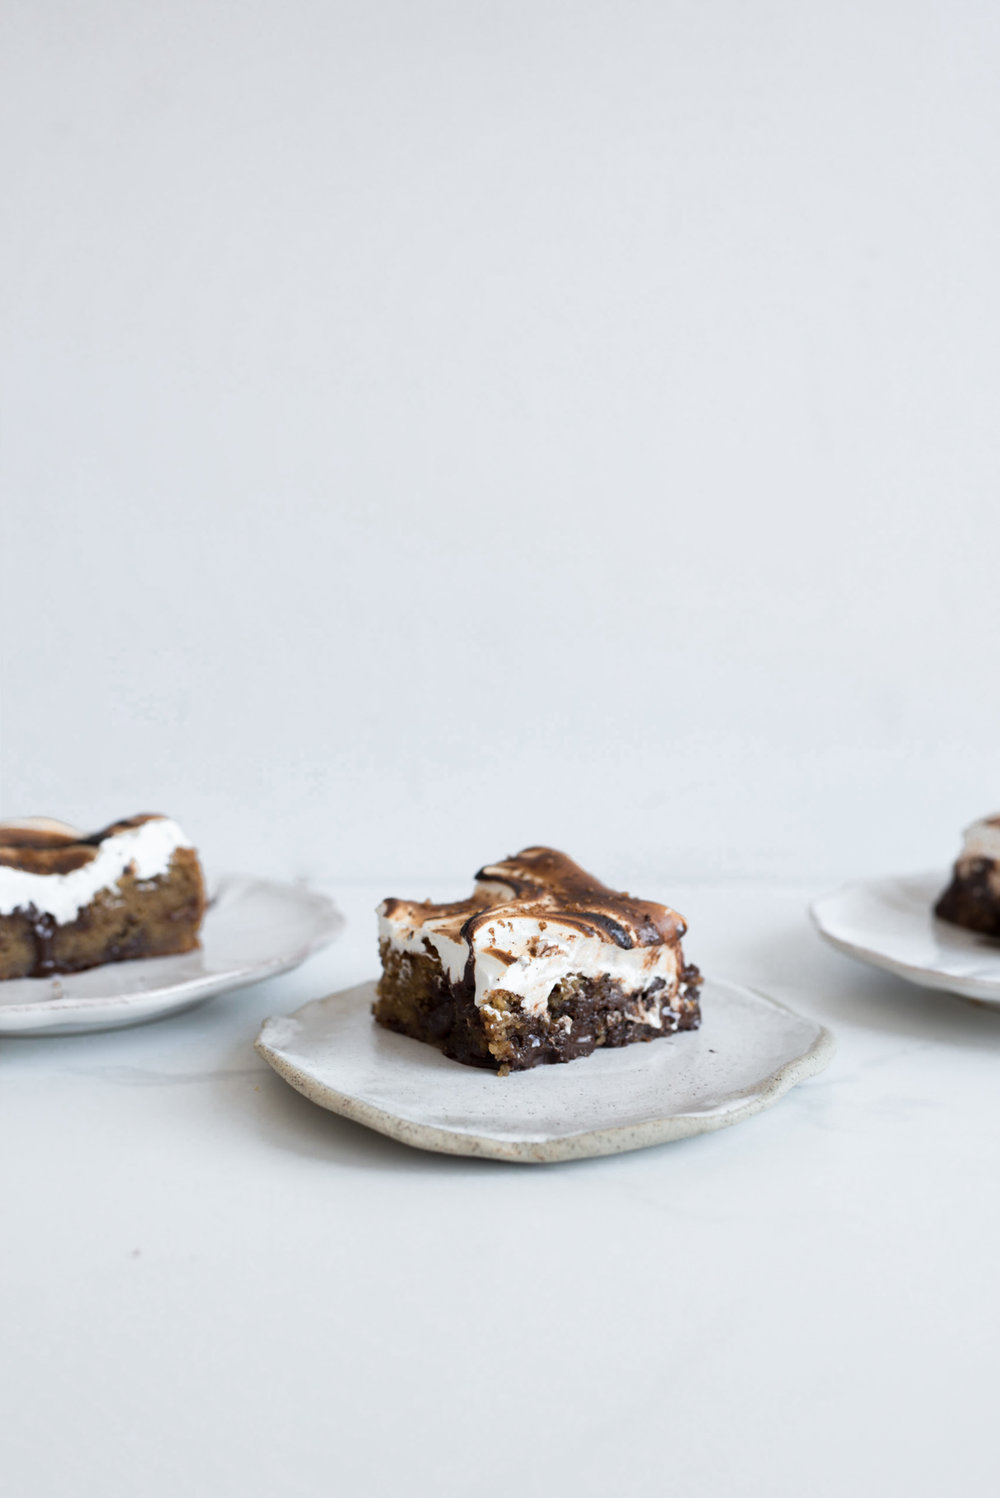 Brown-Butter-Cookie-Meringue-Bars-with-Espresso-Fleur-de-Sel-7.jpg